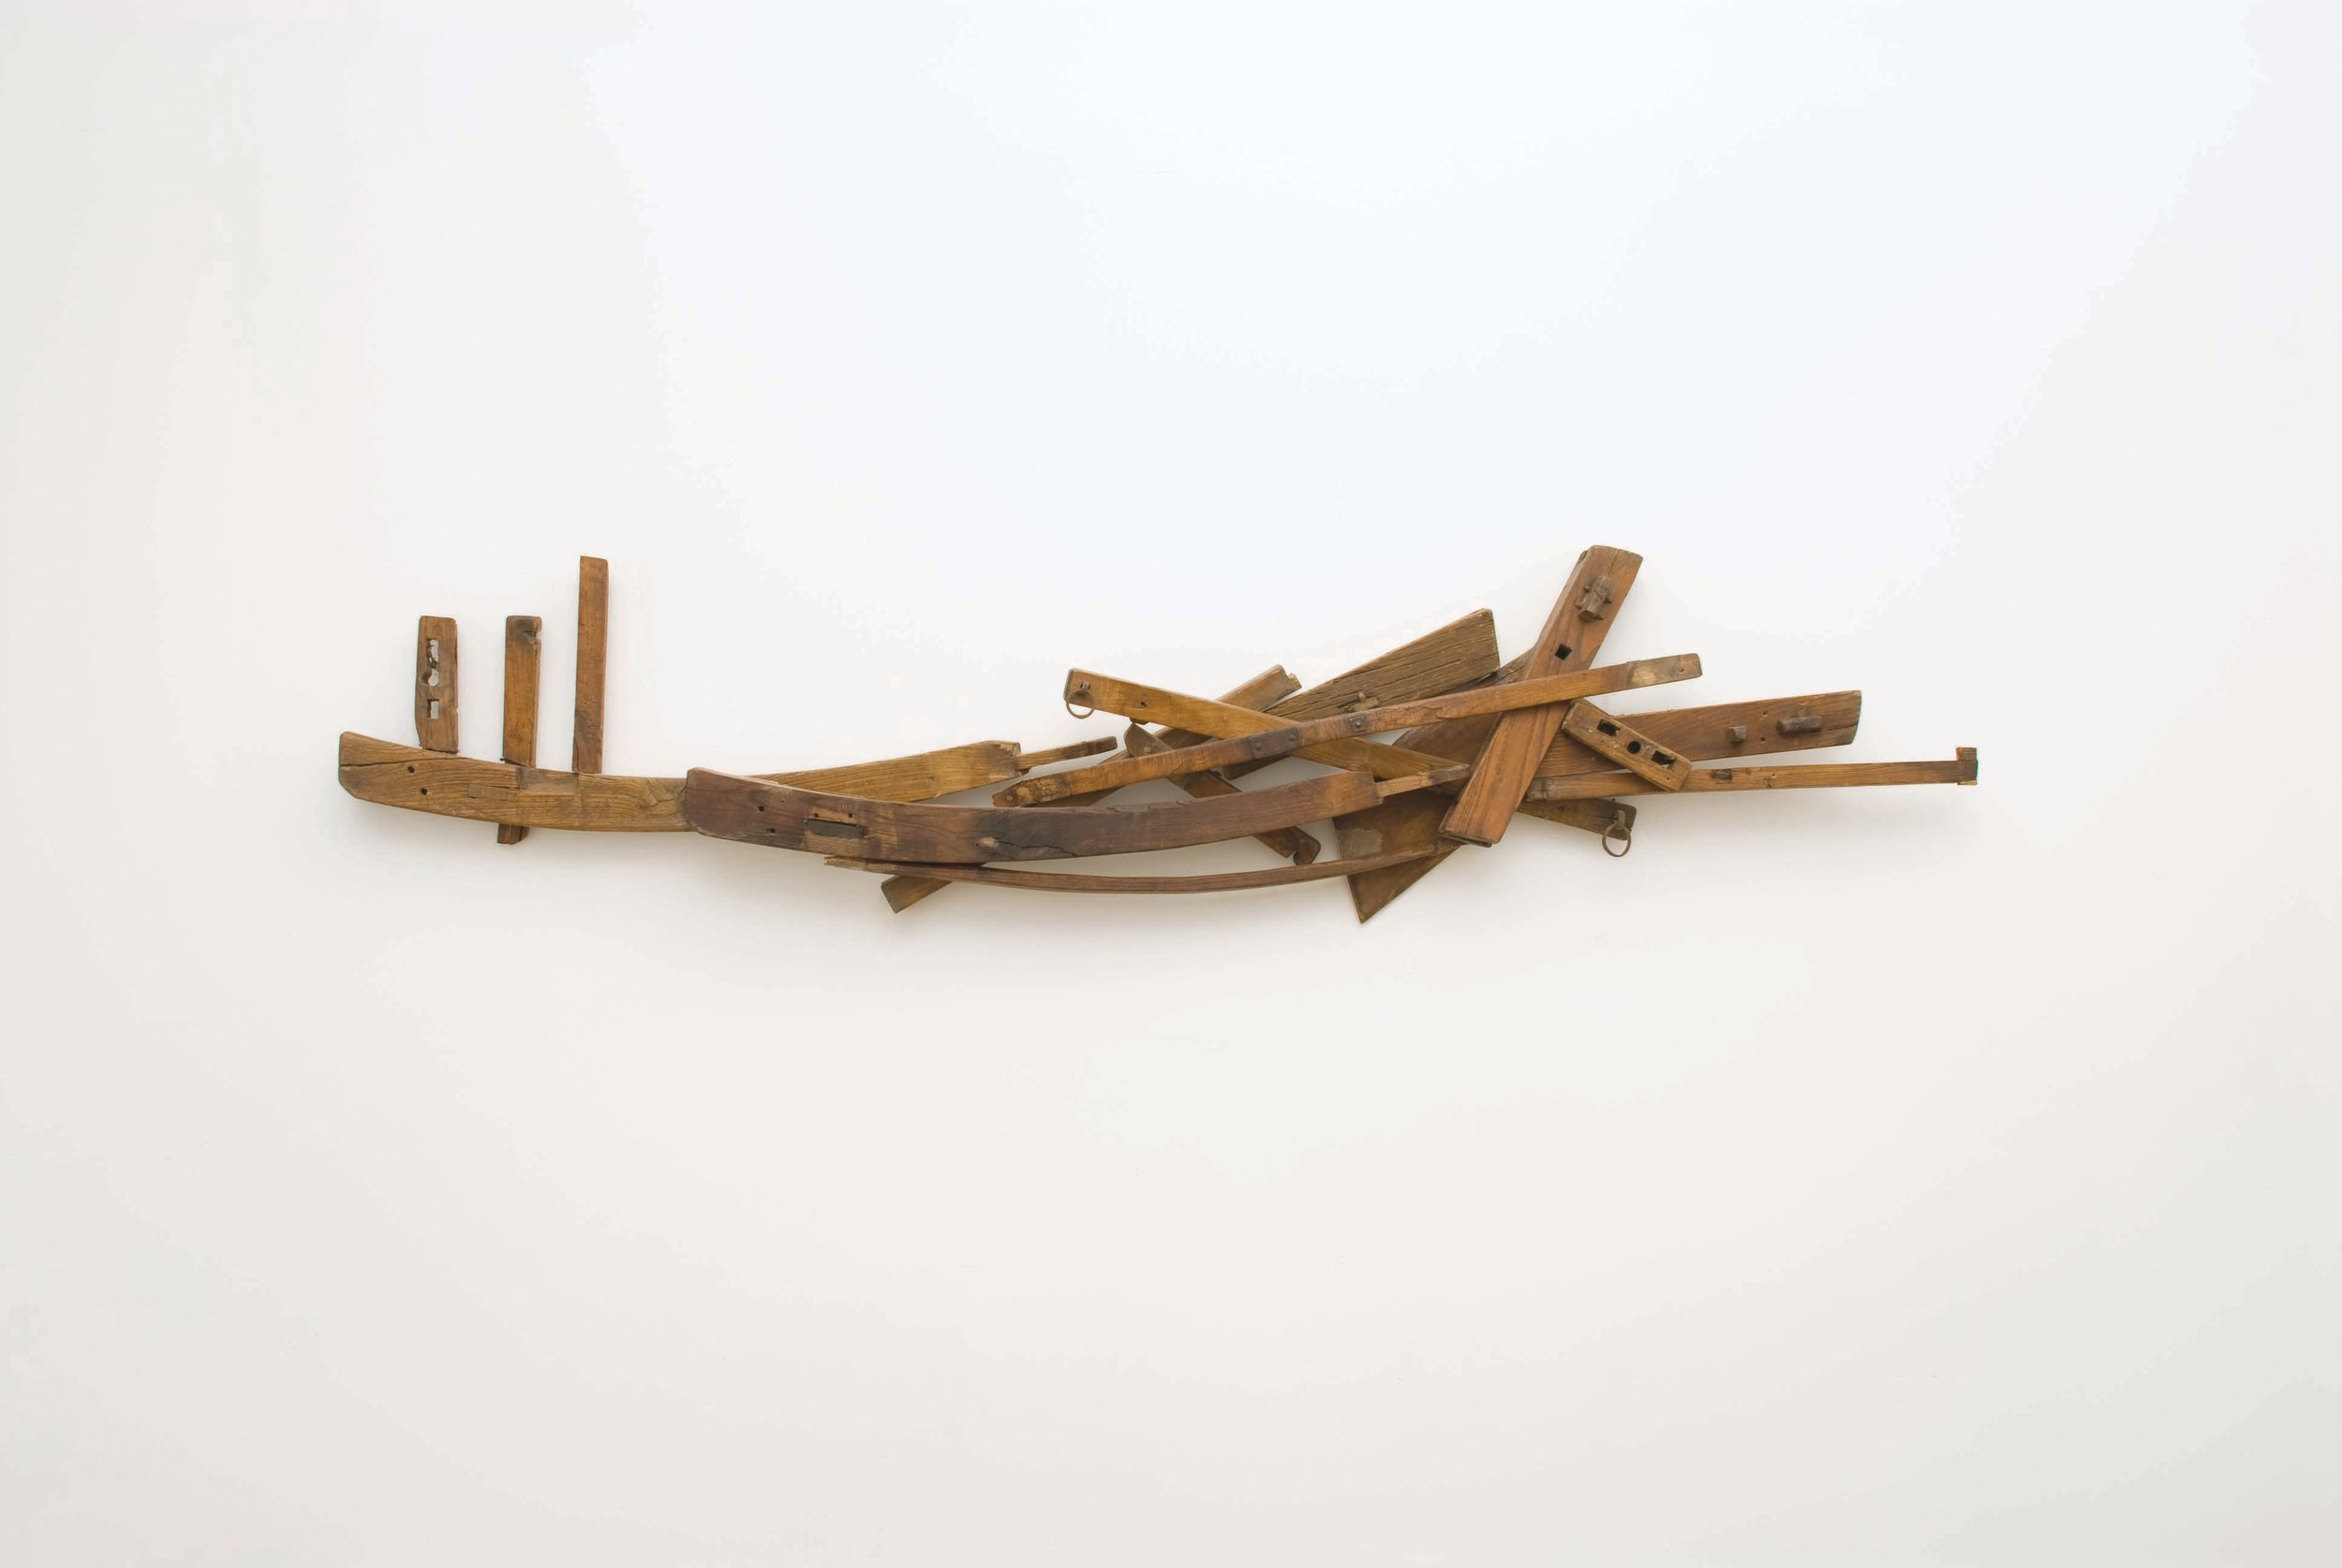 Koji Takei, Untitled, 2009, Stained wood and metal, 24 x 90 x 12""